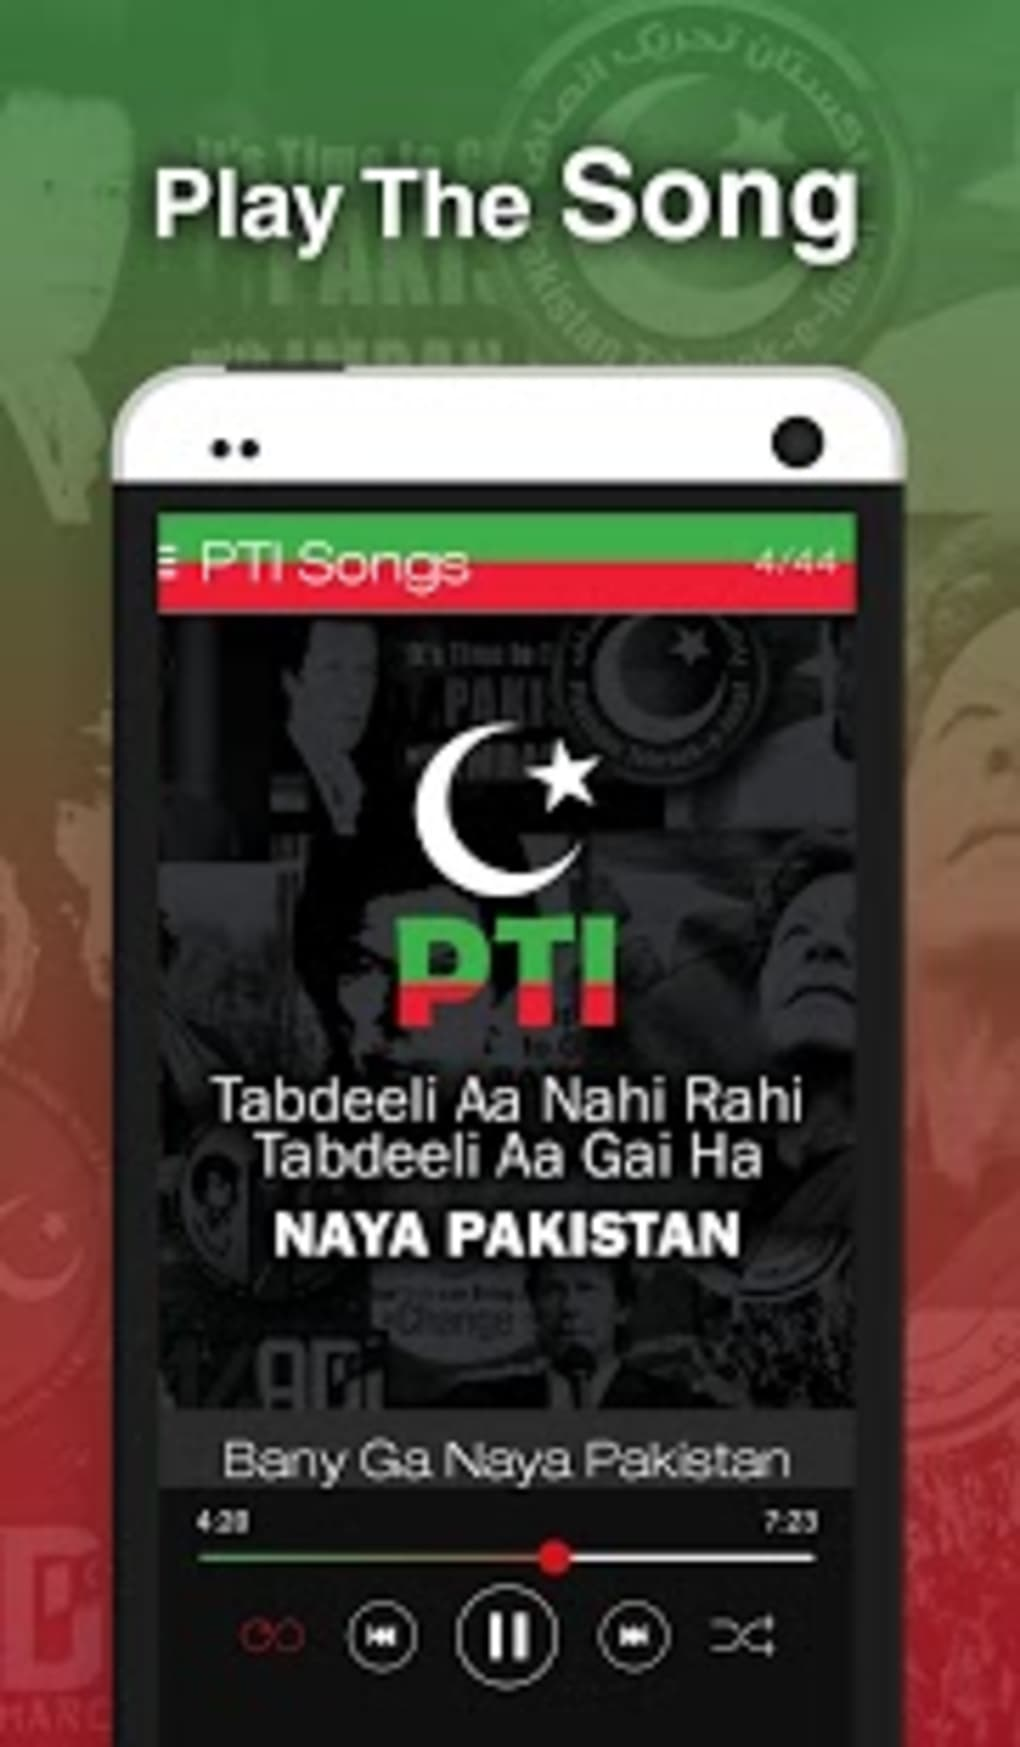 PTI Songs - Imran Khan DJ Butt for Android - Download